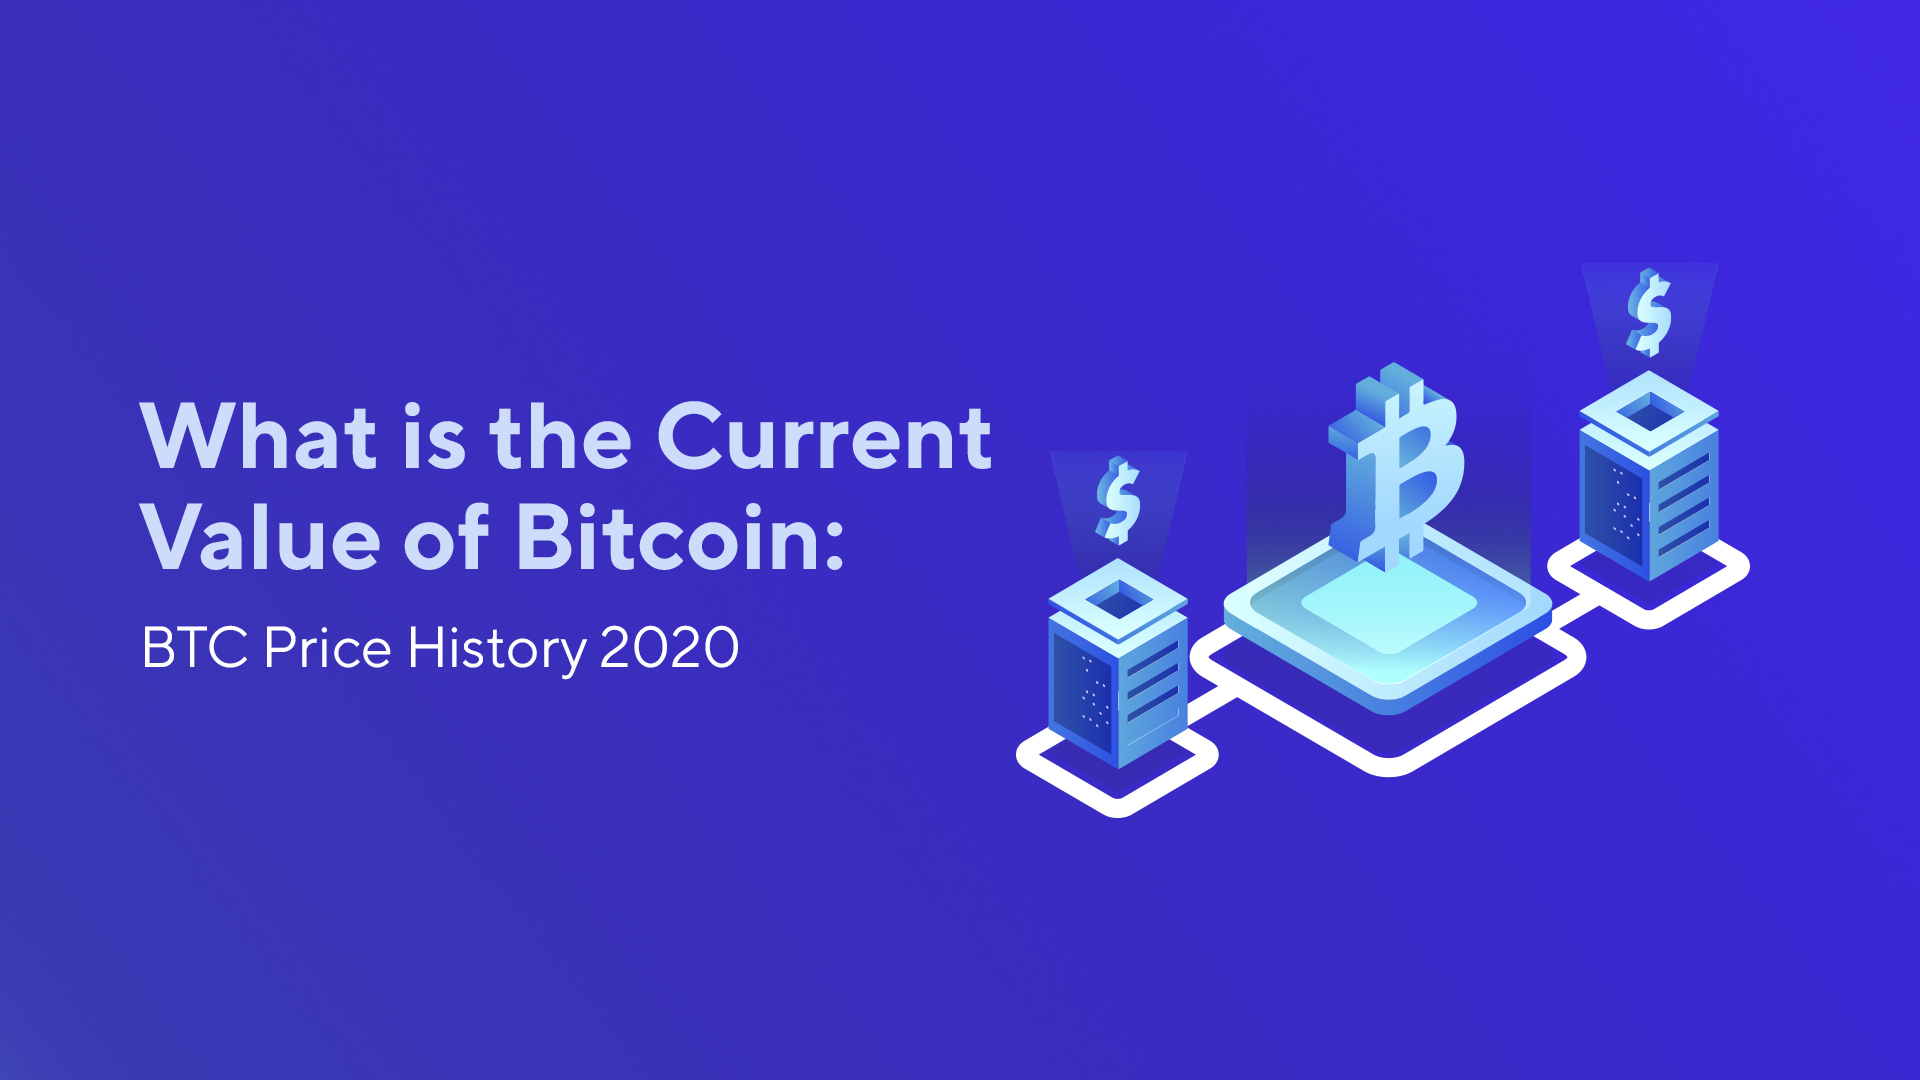 What is the Current Value of Bitcoin: BTC Price History 2020